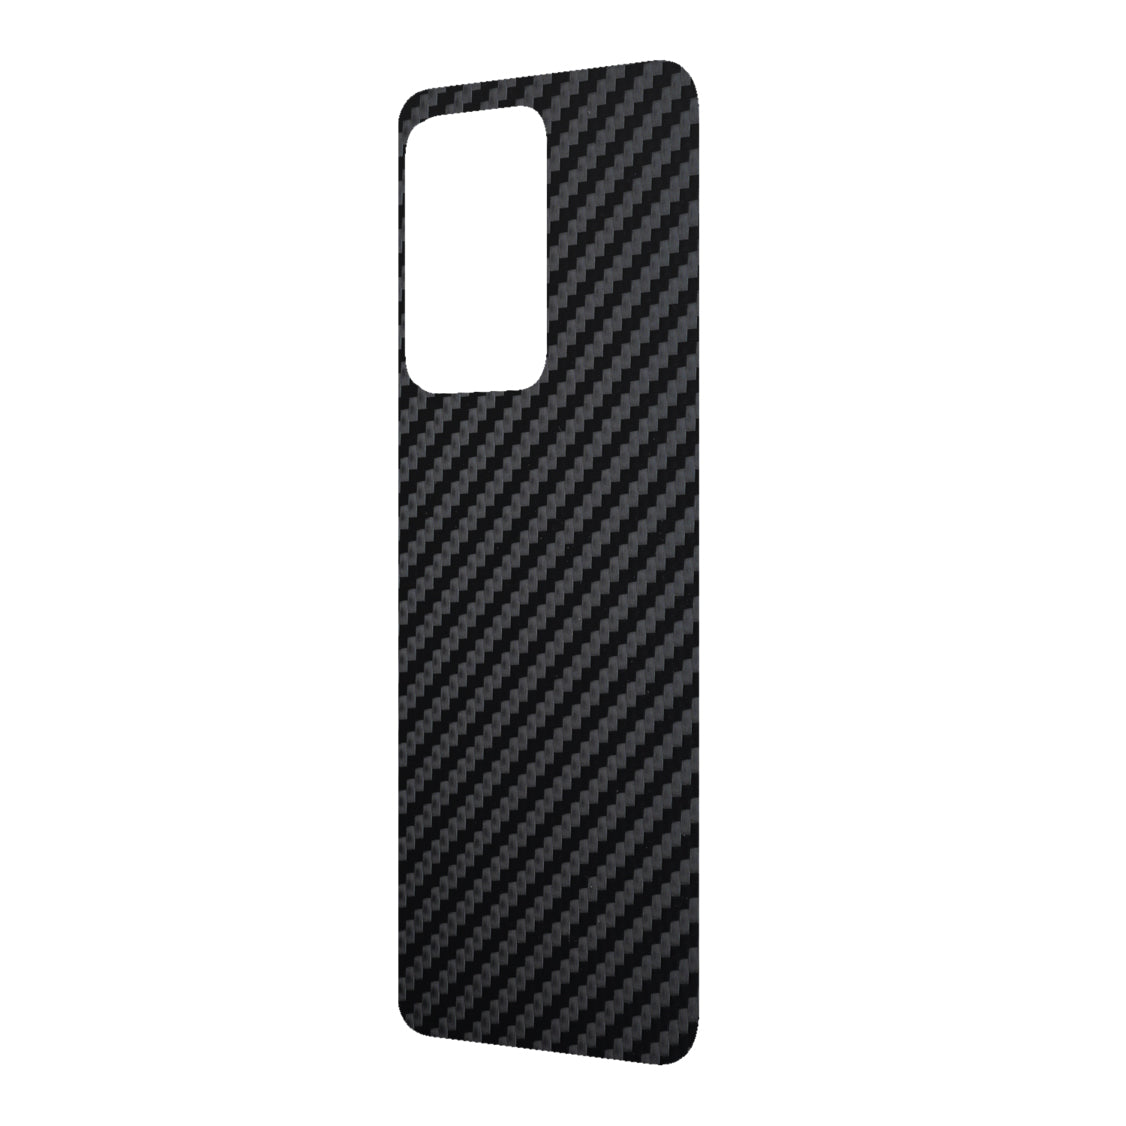 RhinoShield Impact Skin For Samsung S20 Ultra - Carbon Fiber - Macintosh Addict